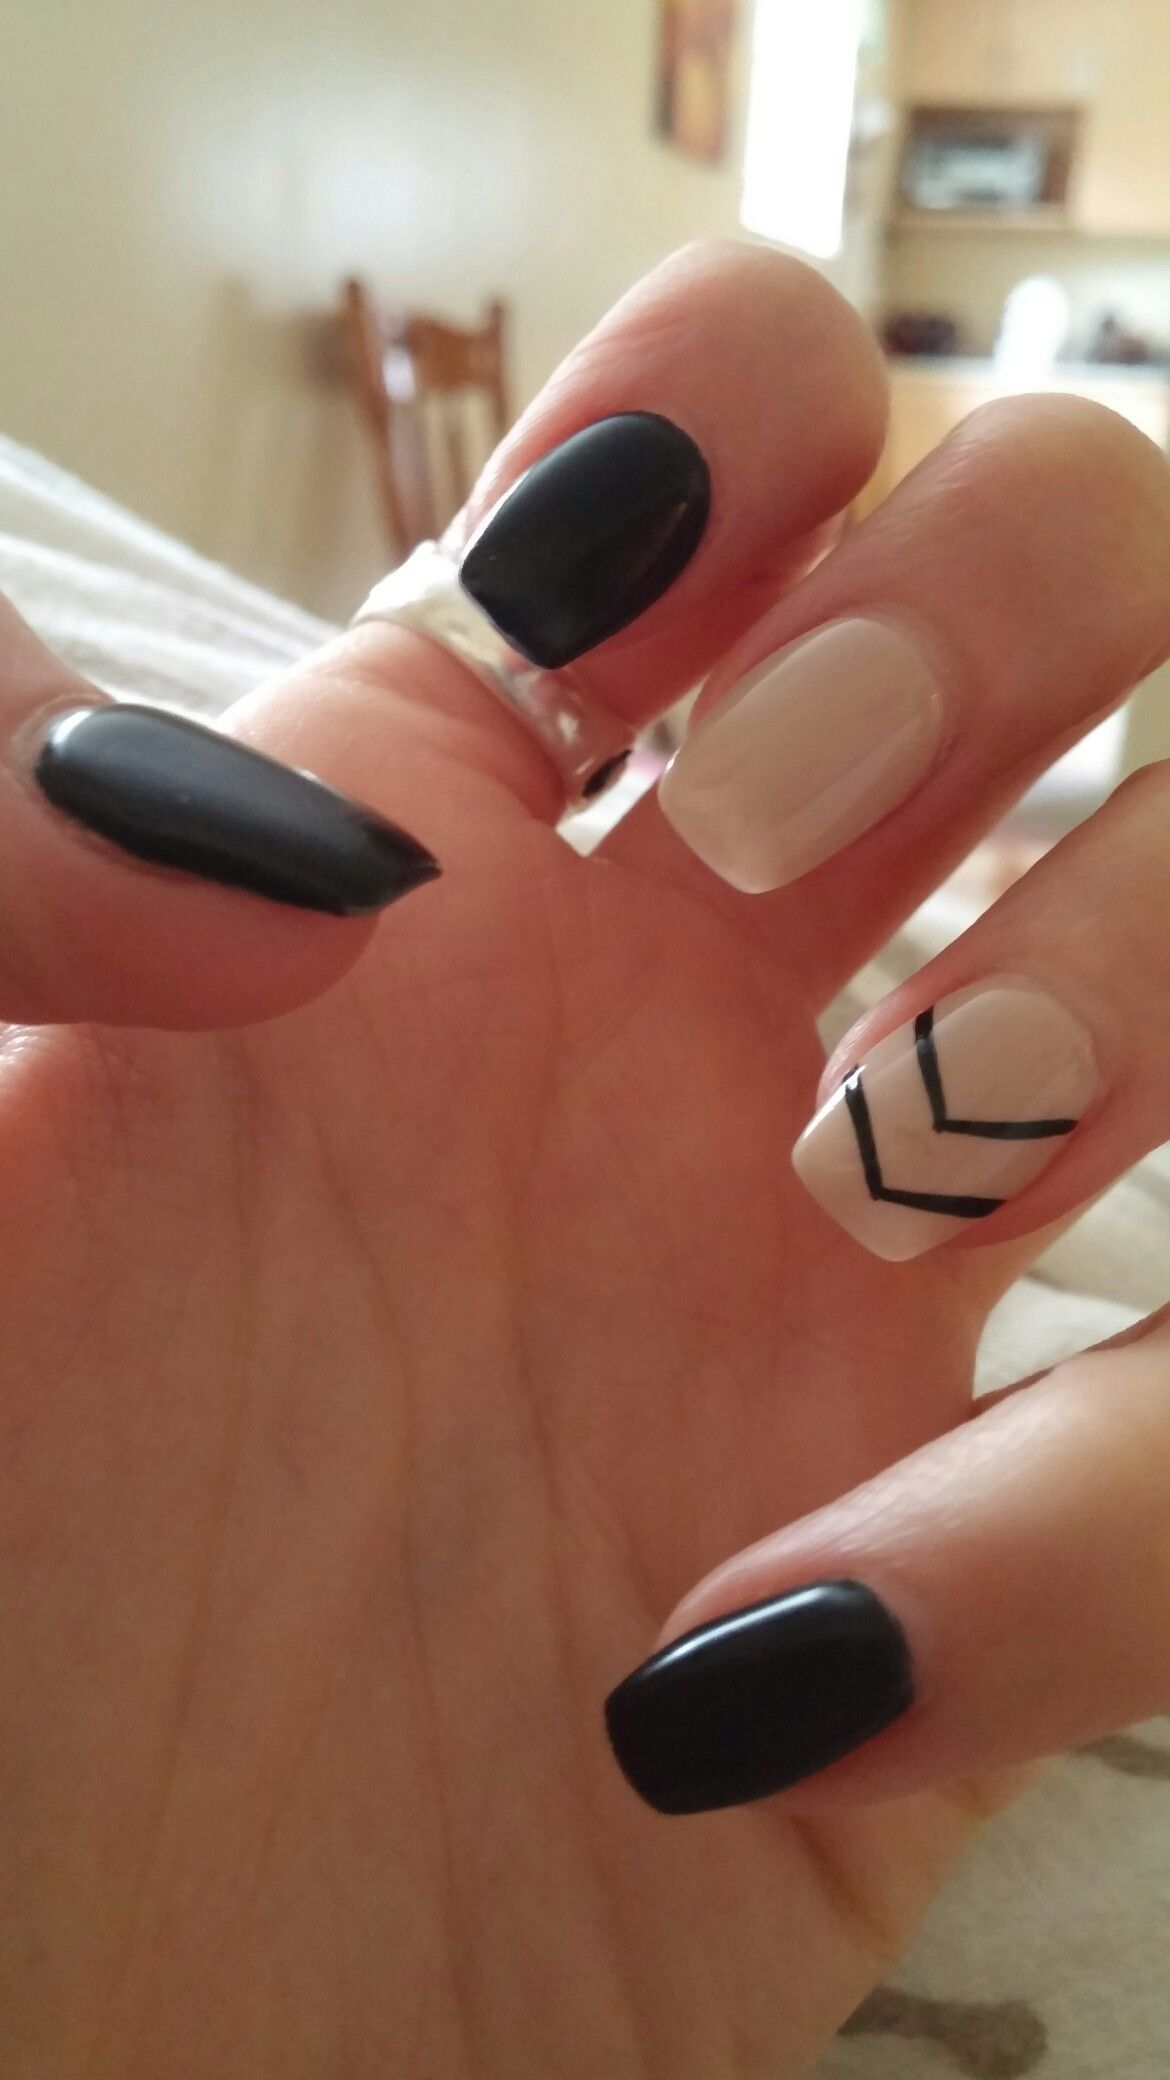 My Current Nails Black And Beige Chevron Coffin Nails Nails Nailsonfleek Blacknails Chevronnails Acrylicna Stylish Nails Fall Nail Designs Beige Nails